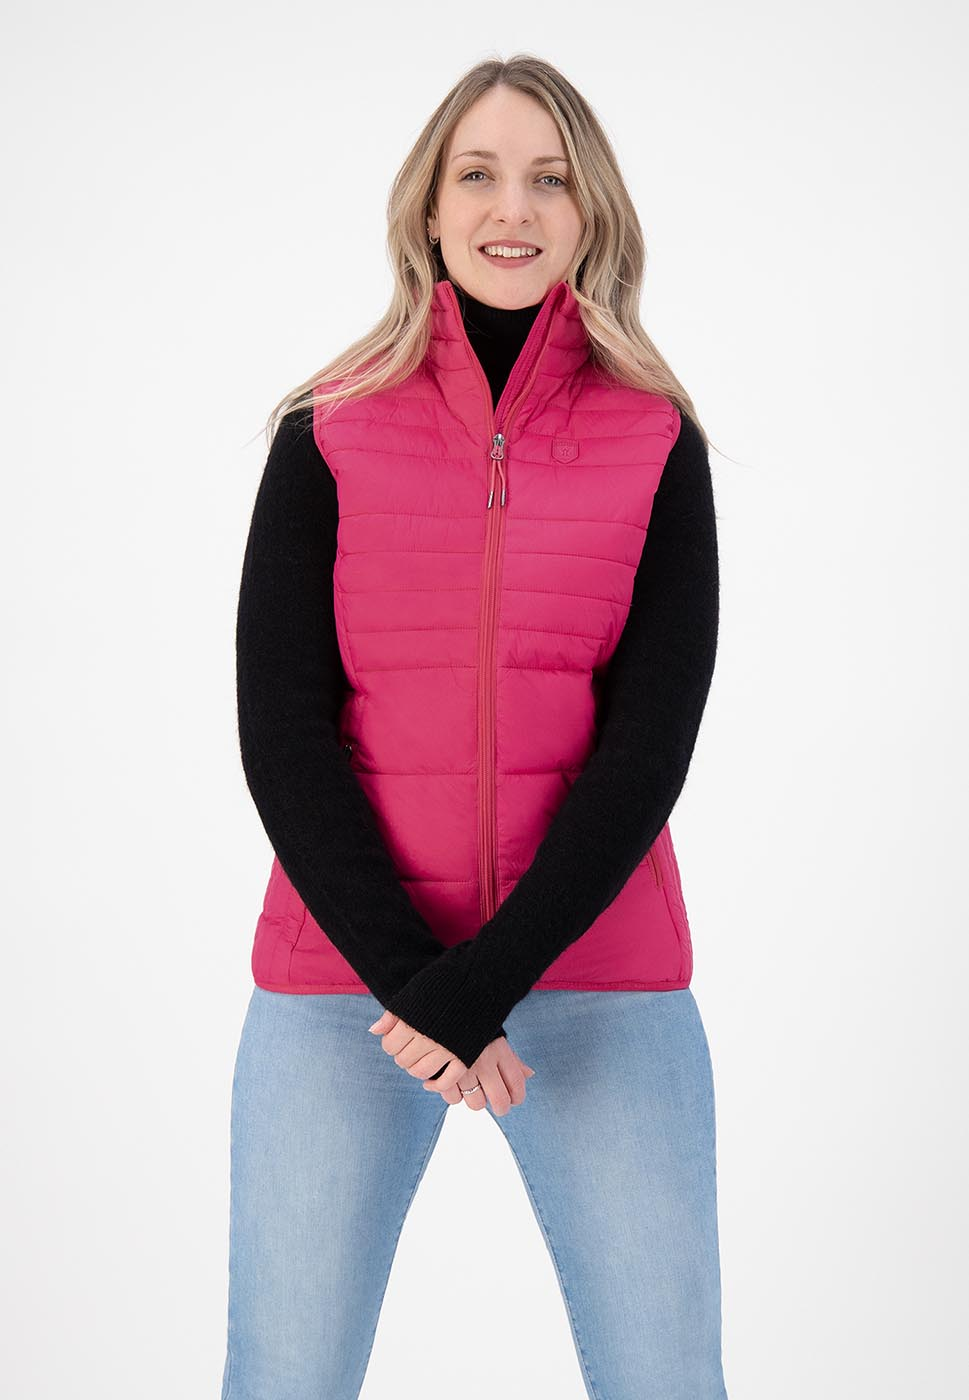 Kjelvik Scandinavian Clothing - Women Bodywarmers Denise Pink